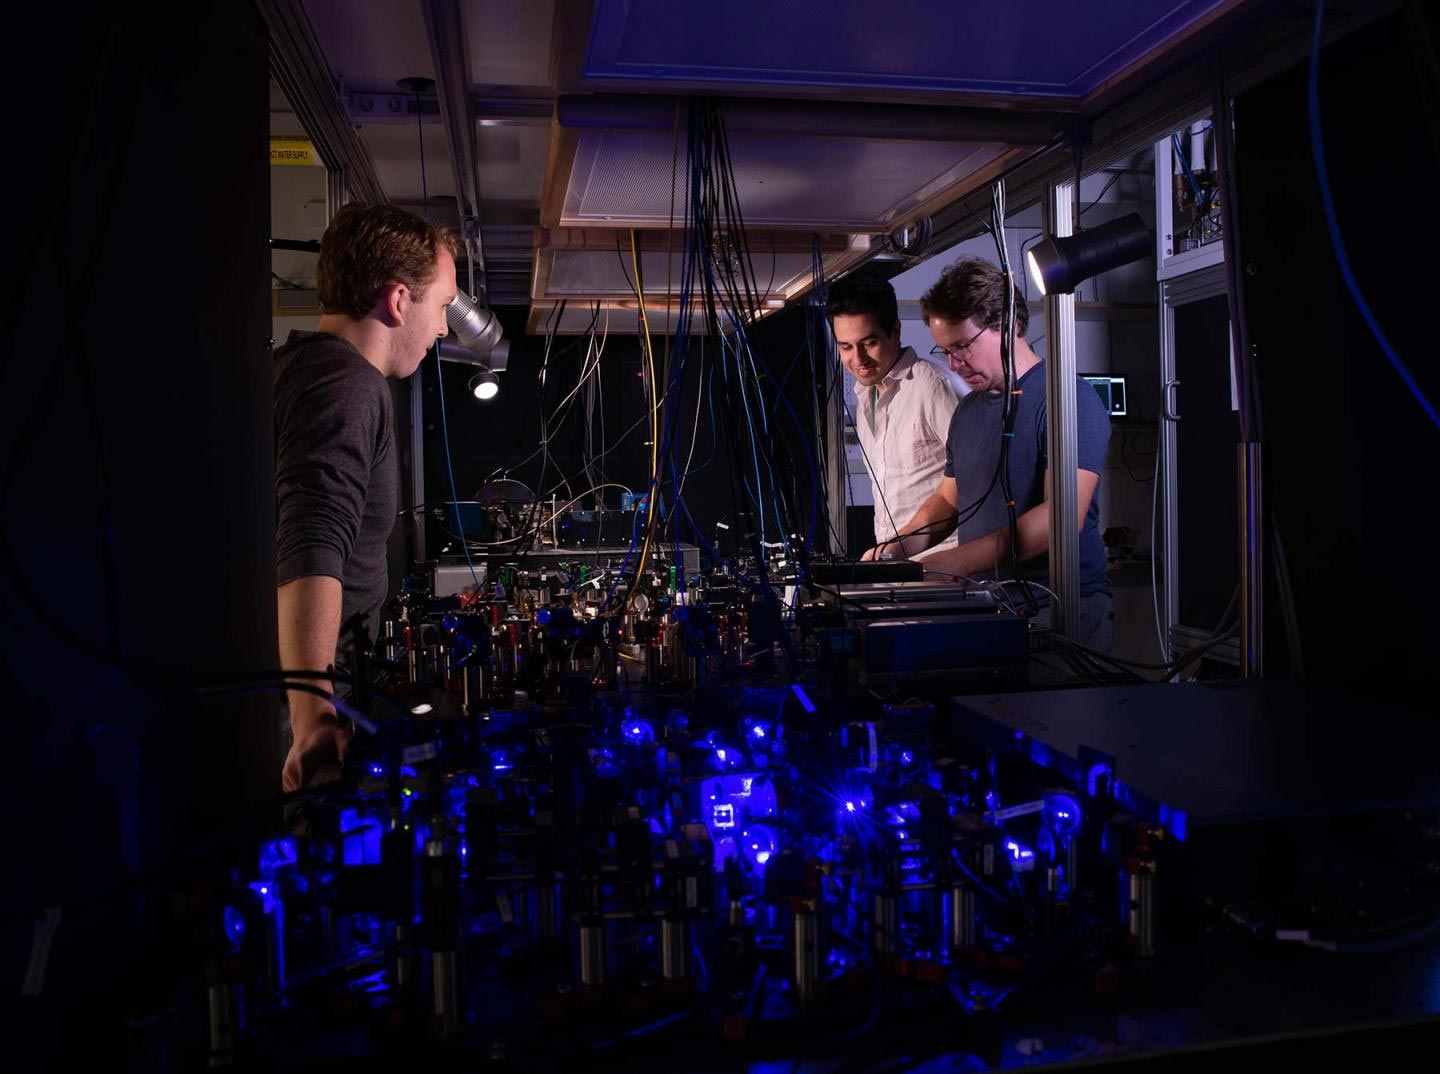 New Optical Atomic 'Tweezer Clock' May Be Most Accurate and Precise Timekeeper Yet - SciTechDaily